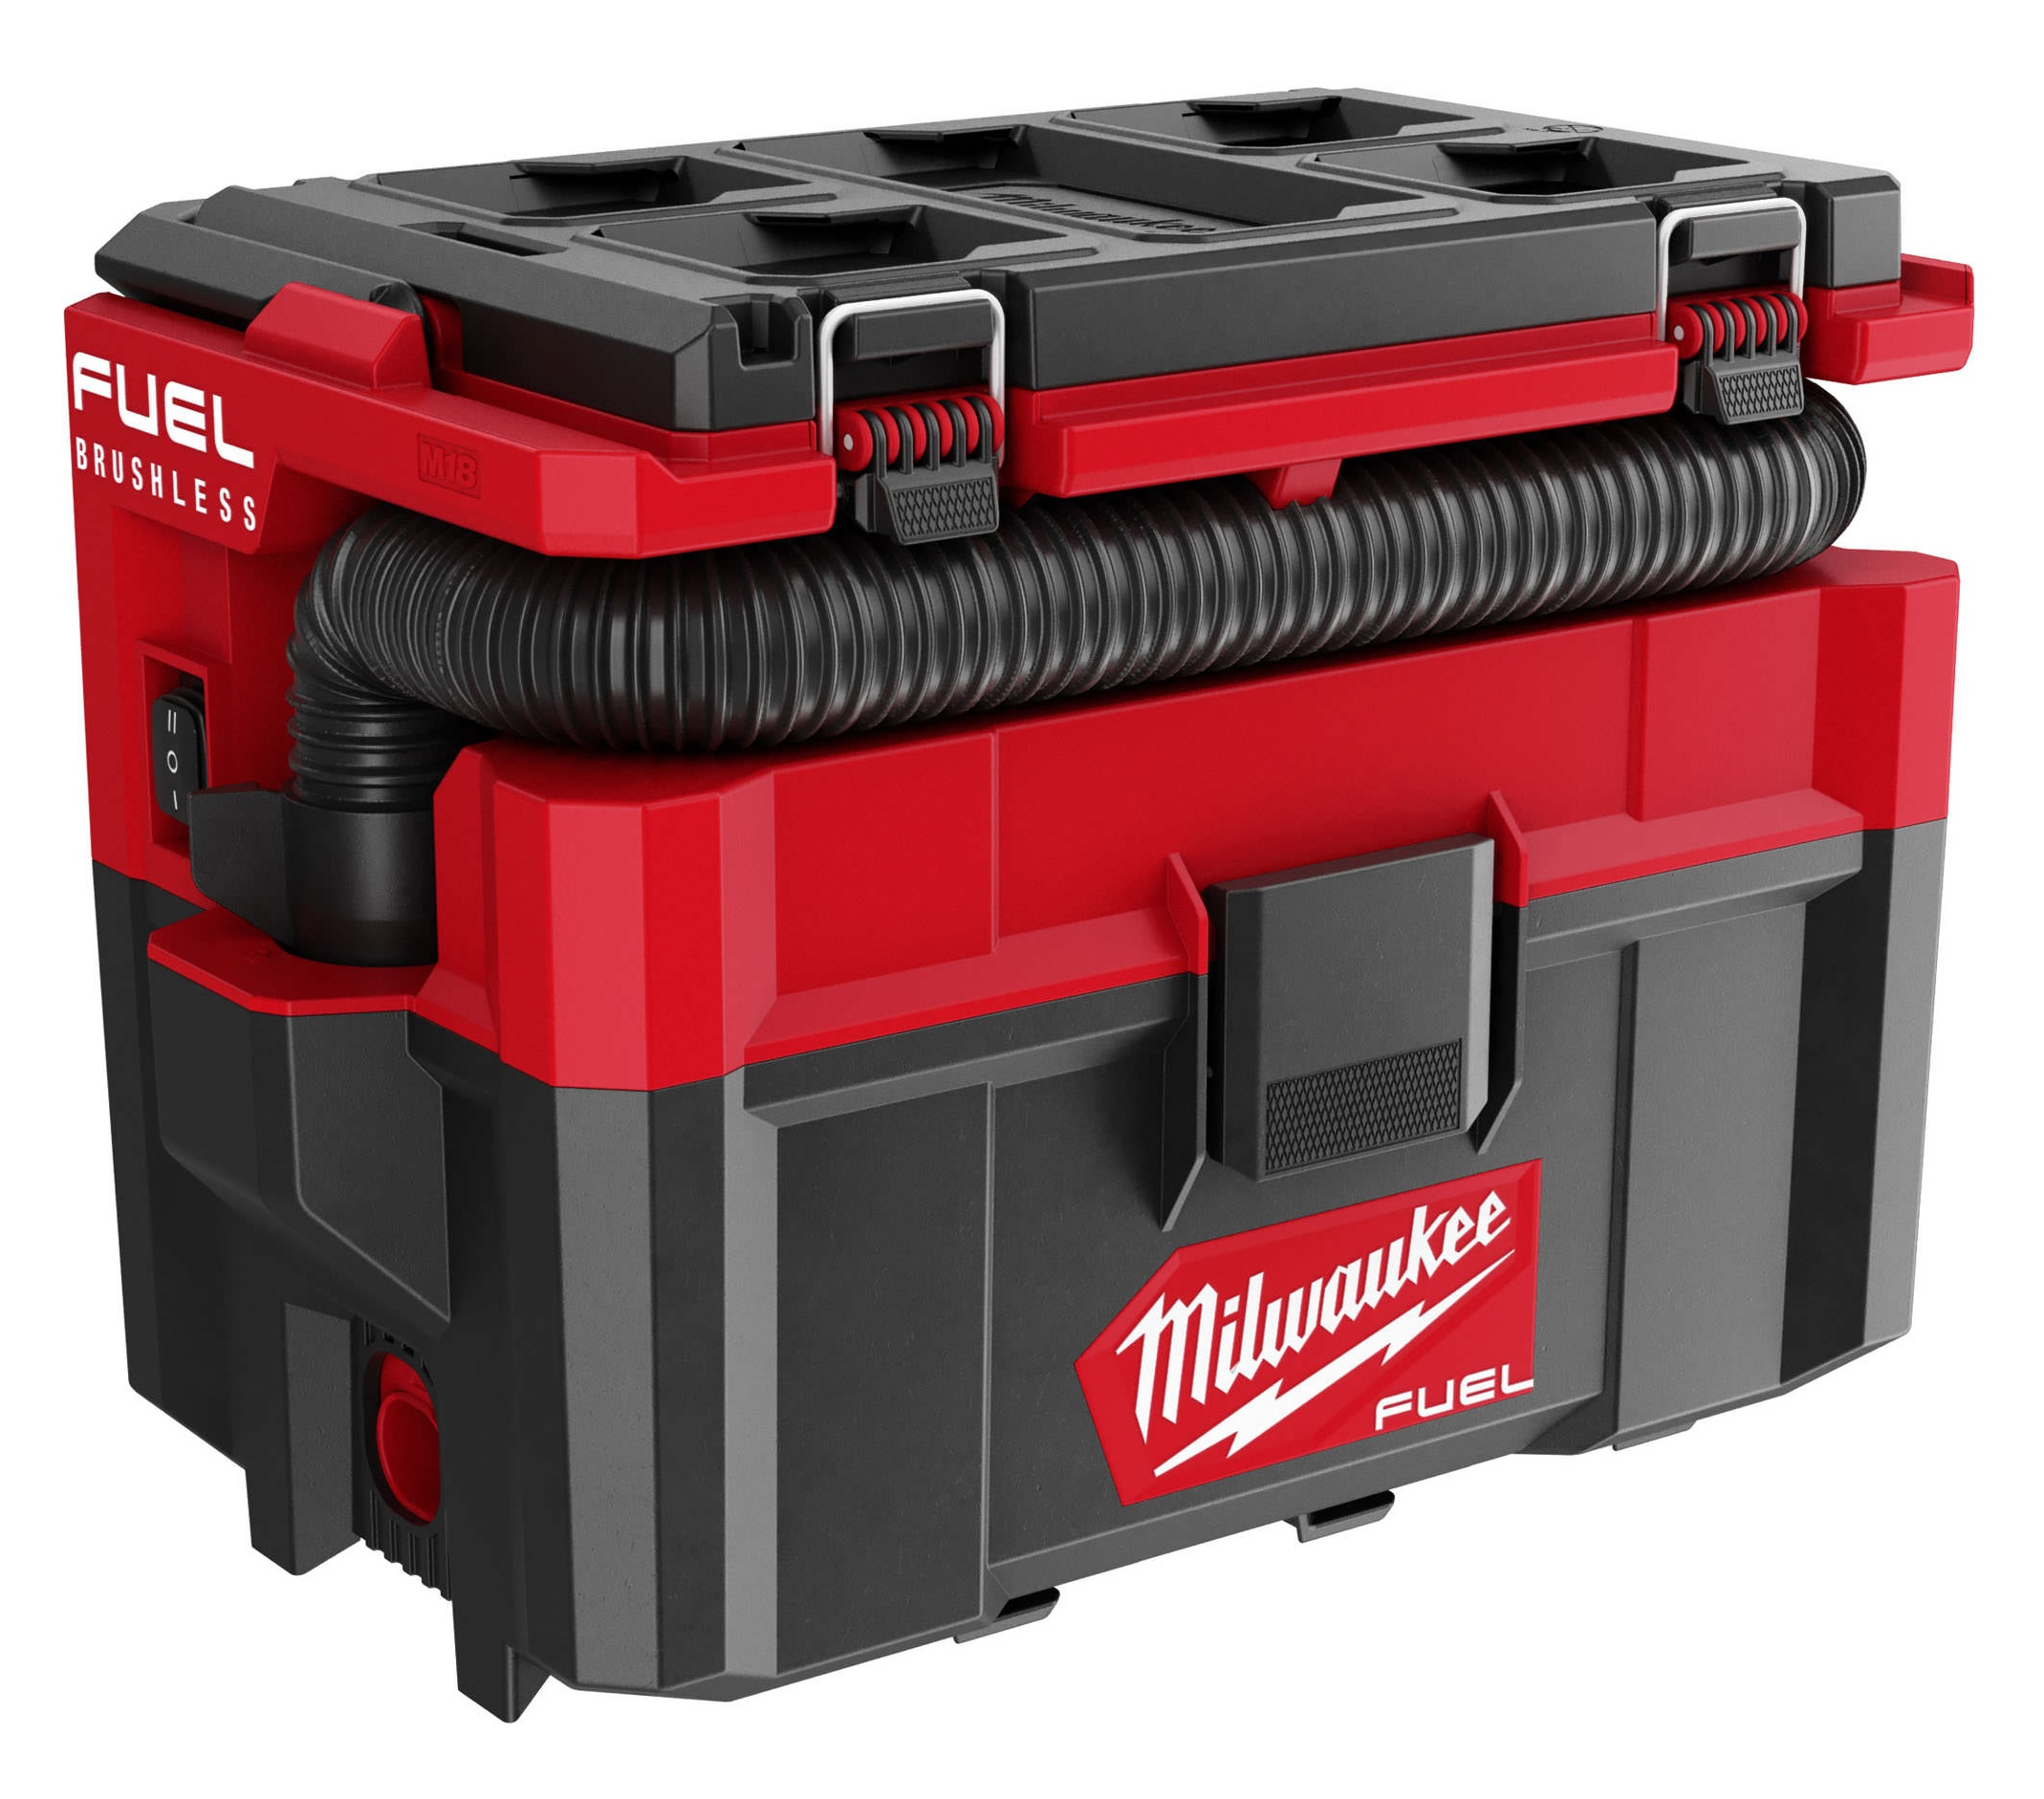 Milwaukee 18V Fuel Brushless Packout Wet N Dry Vacuum - M18FPOVCL - Body Only